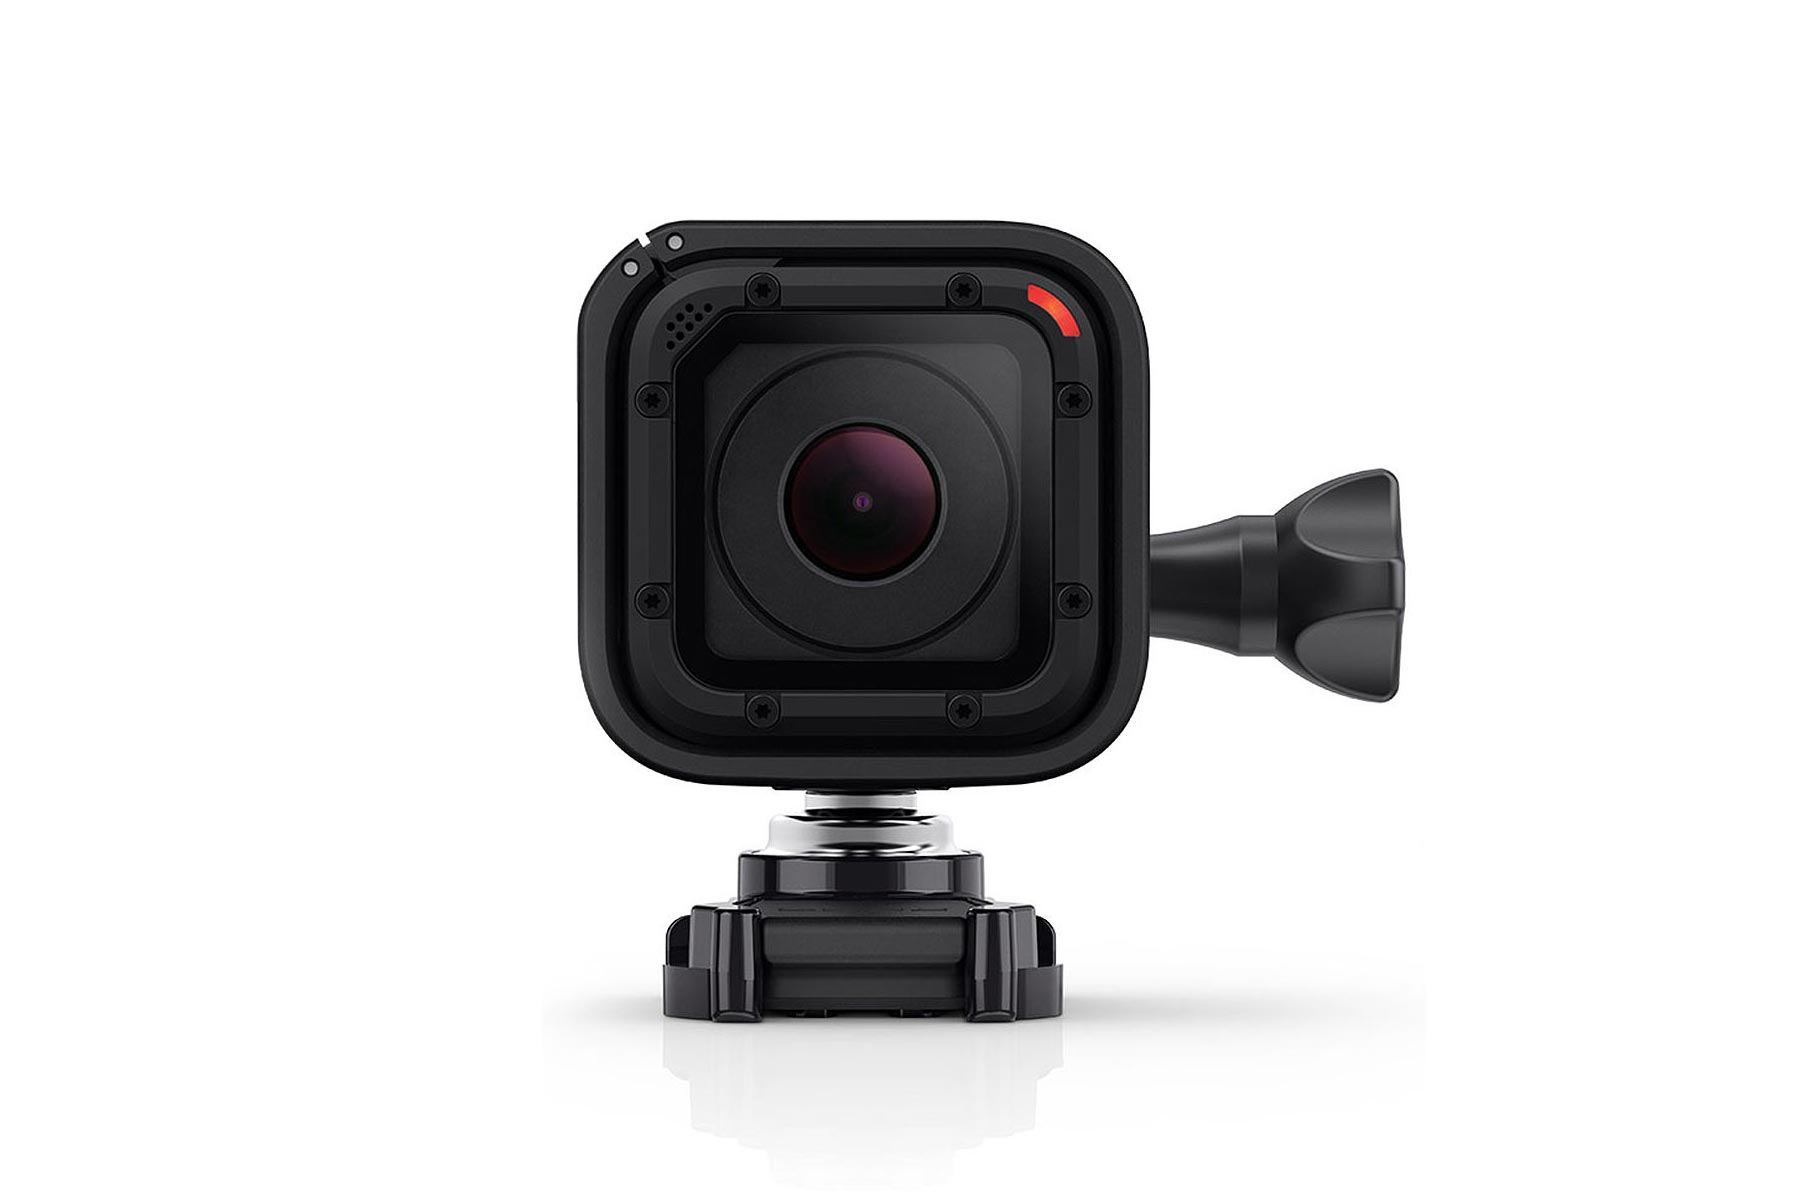 gopro hero4 session a smaller gopro video camera asphalt rubber. Black Bedroom Furniture Sets. Home Design Ideas